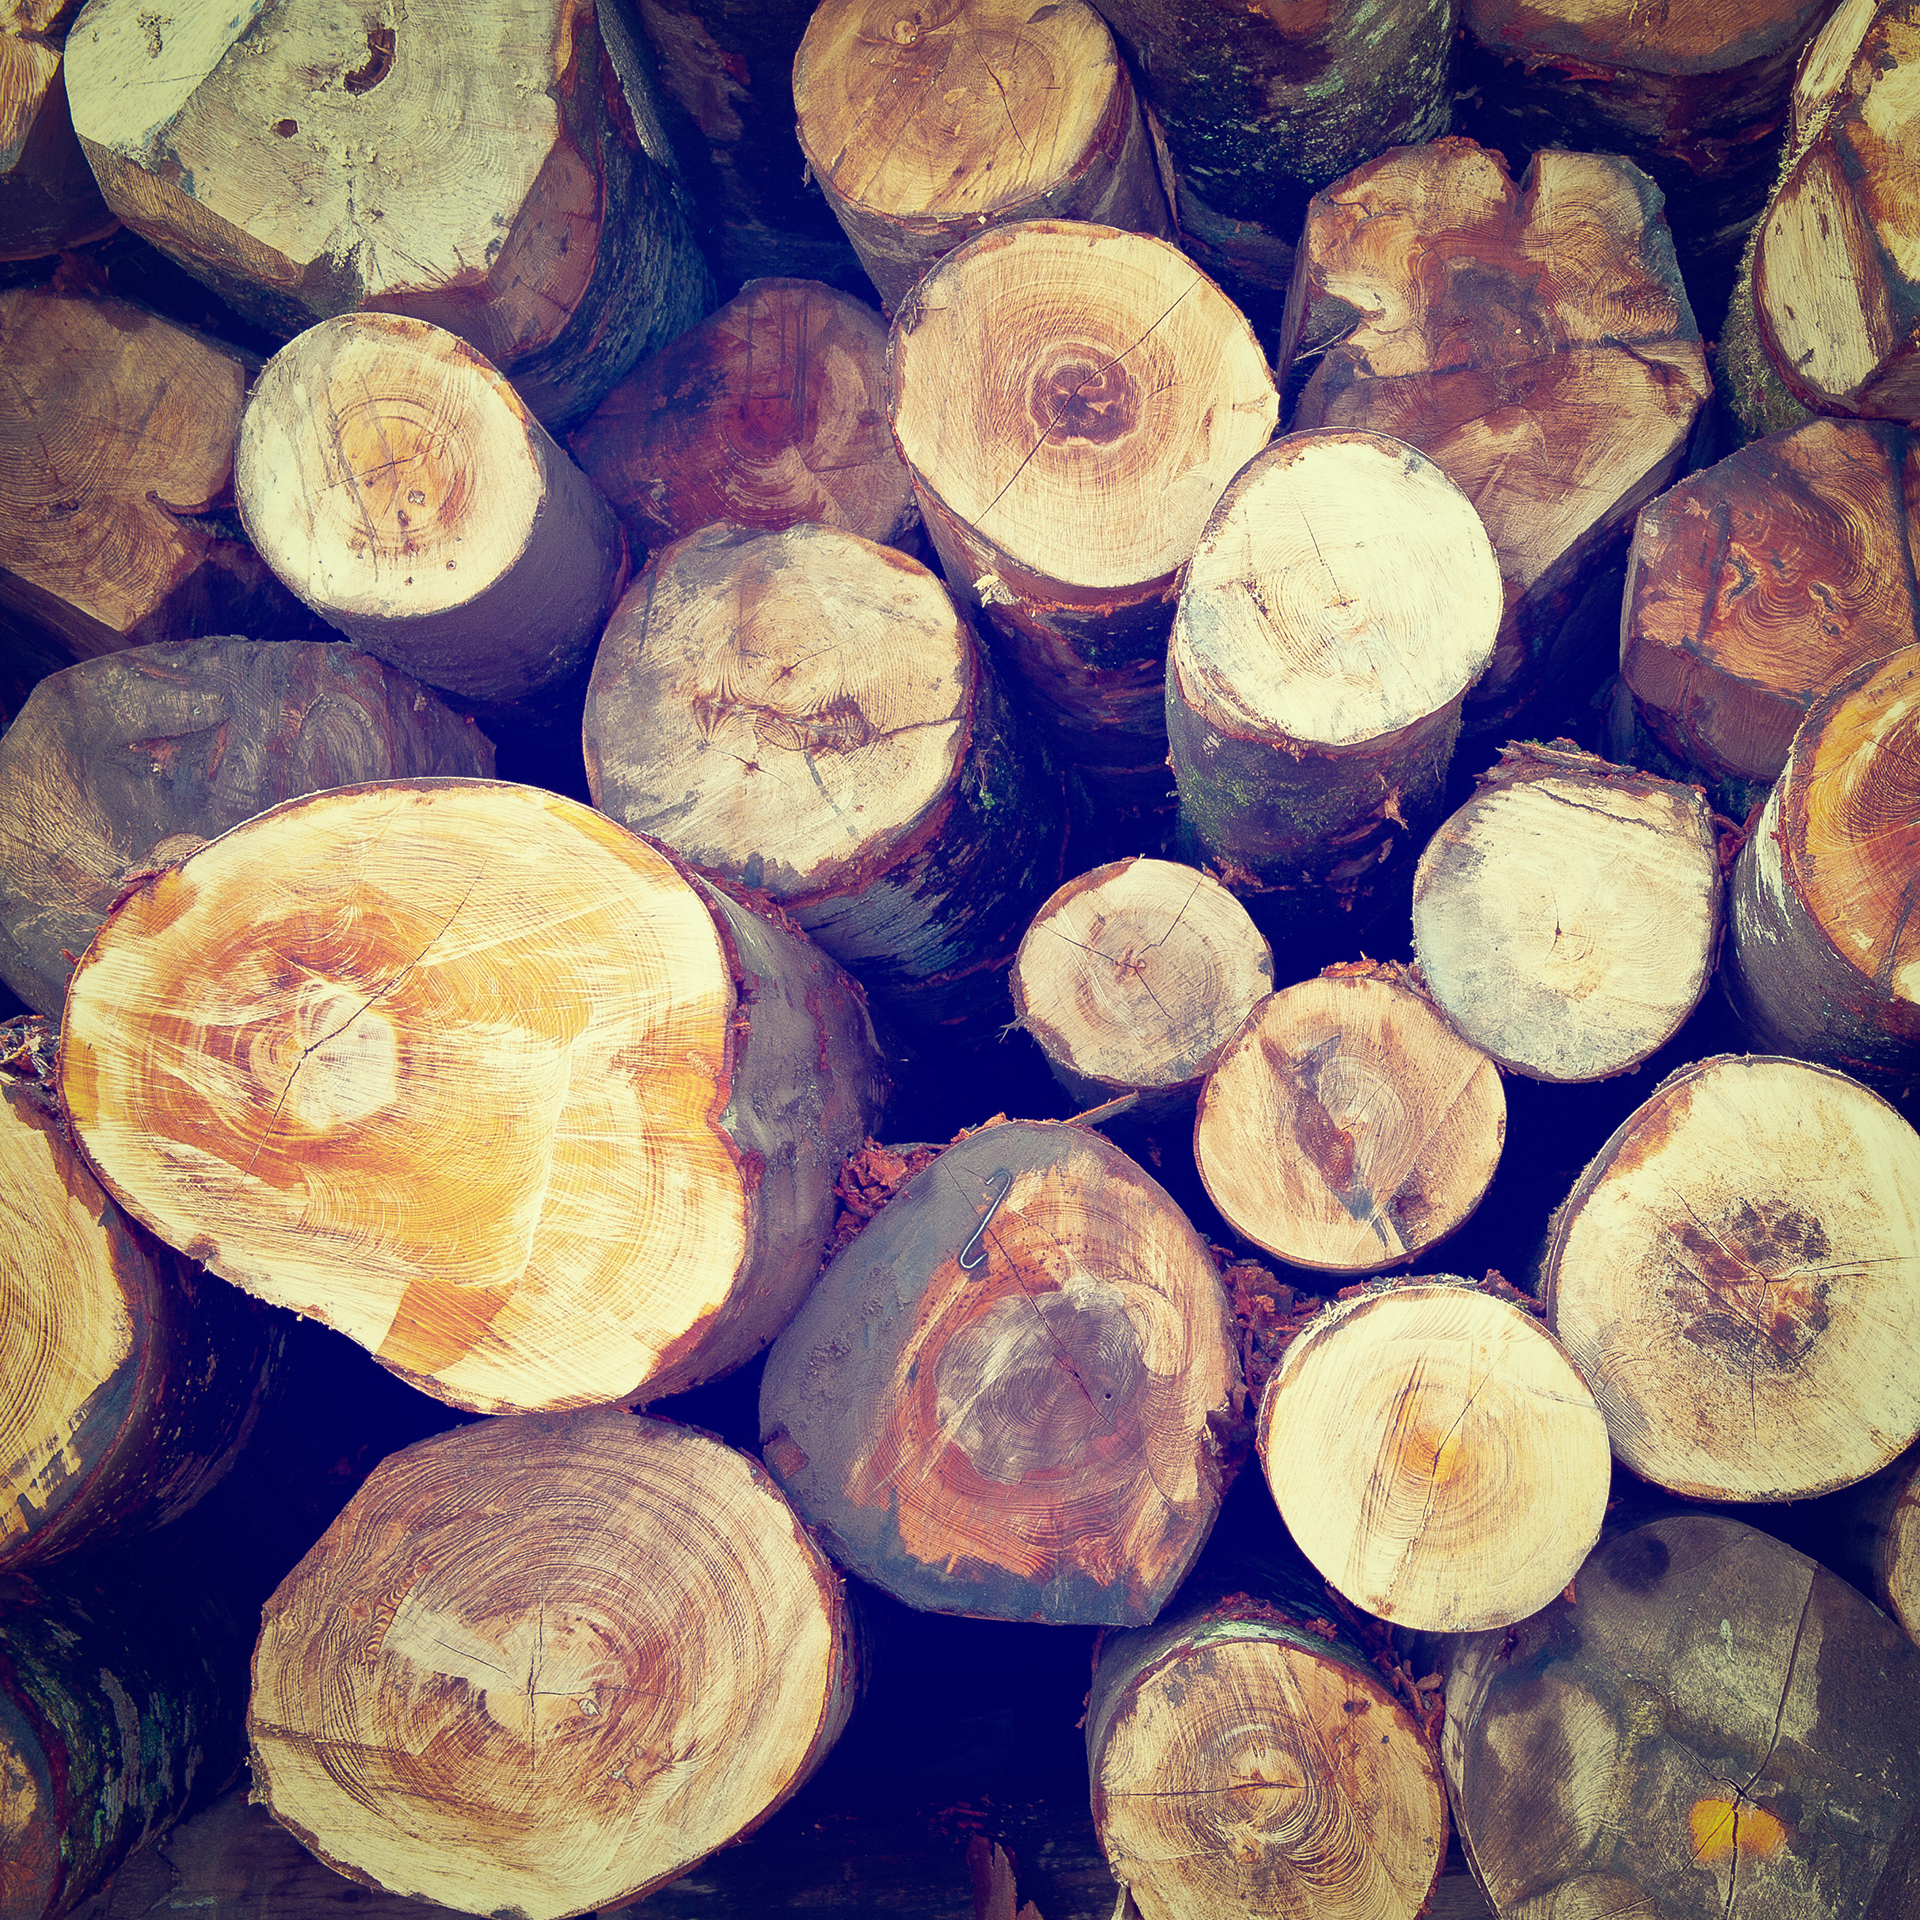 Chopping Wood, yeah!